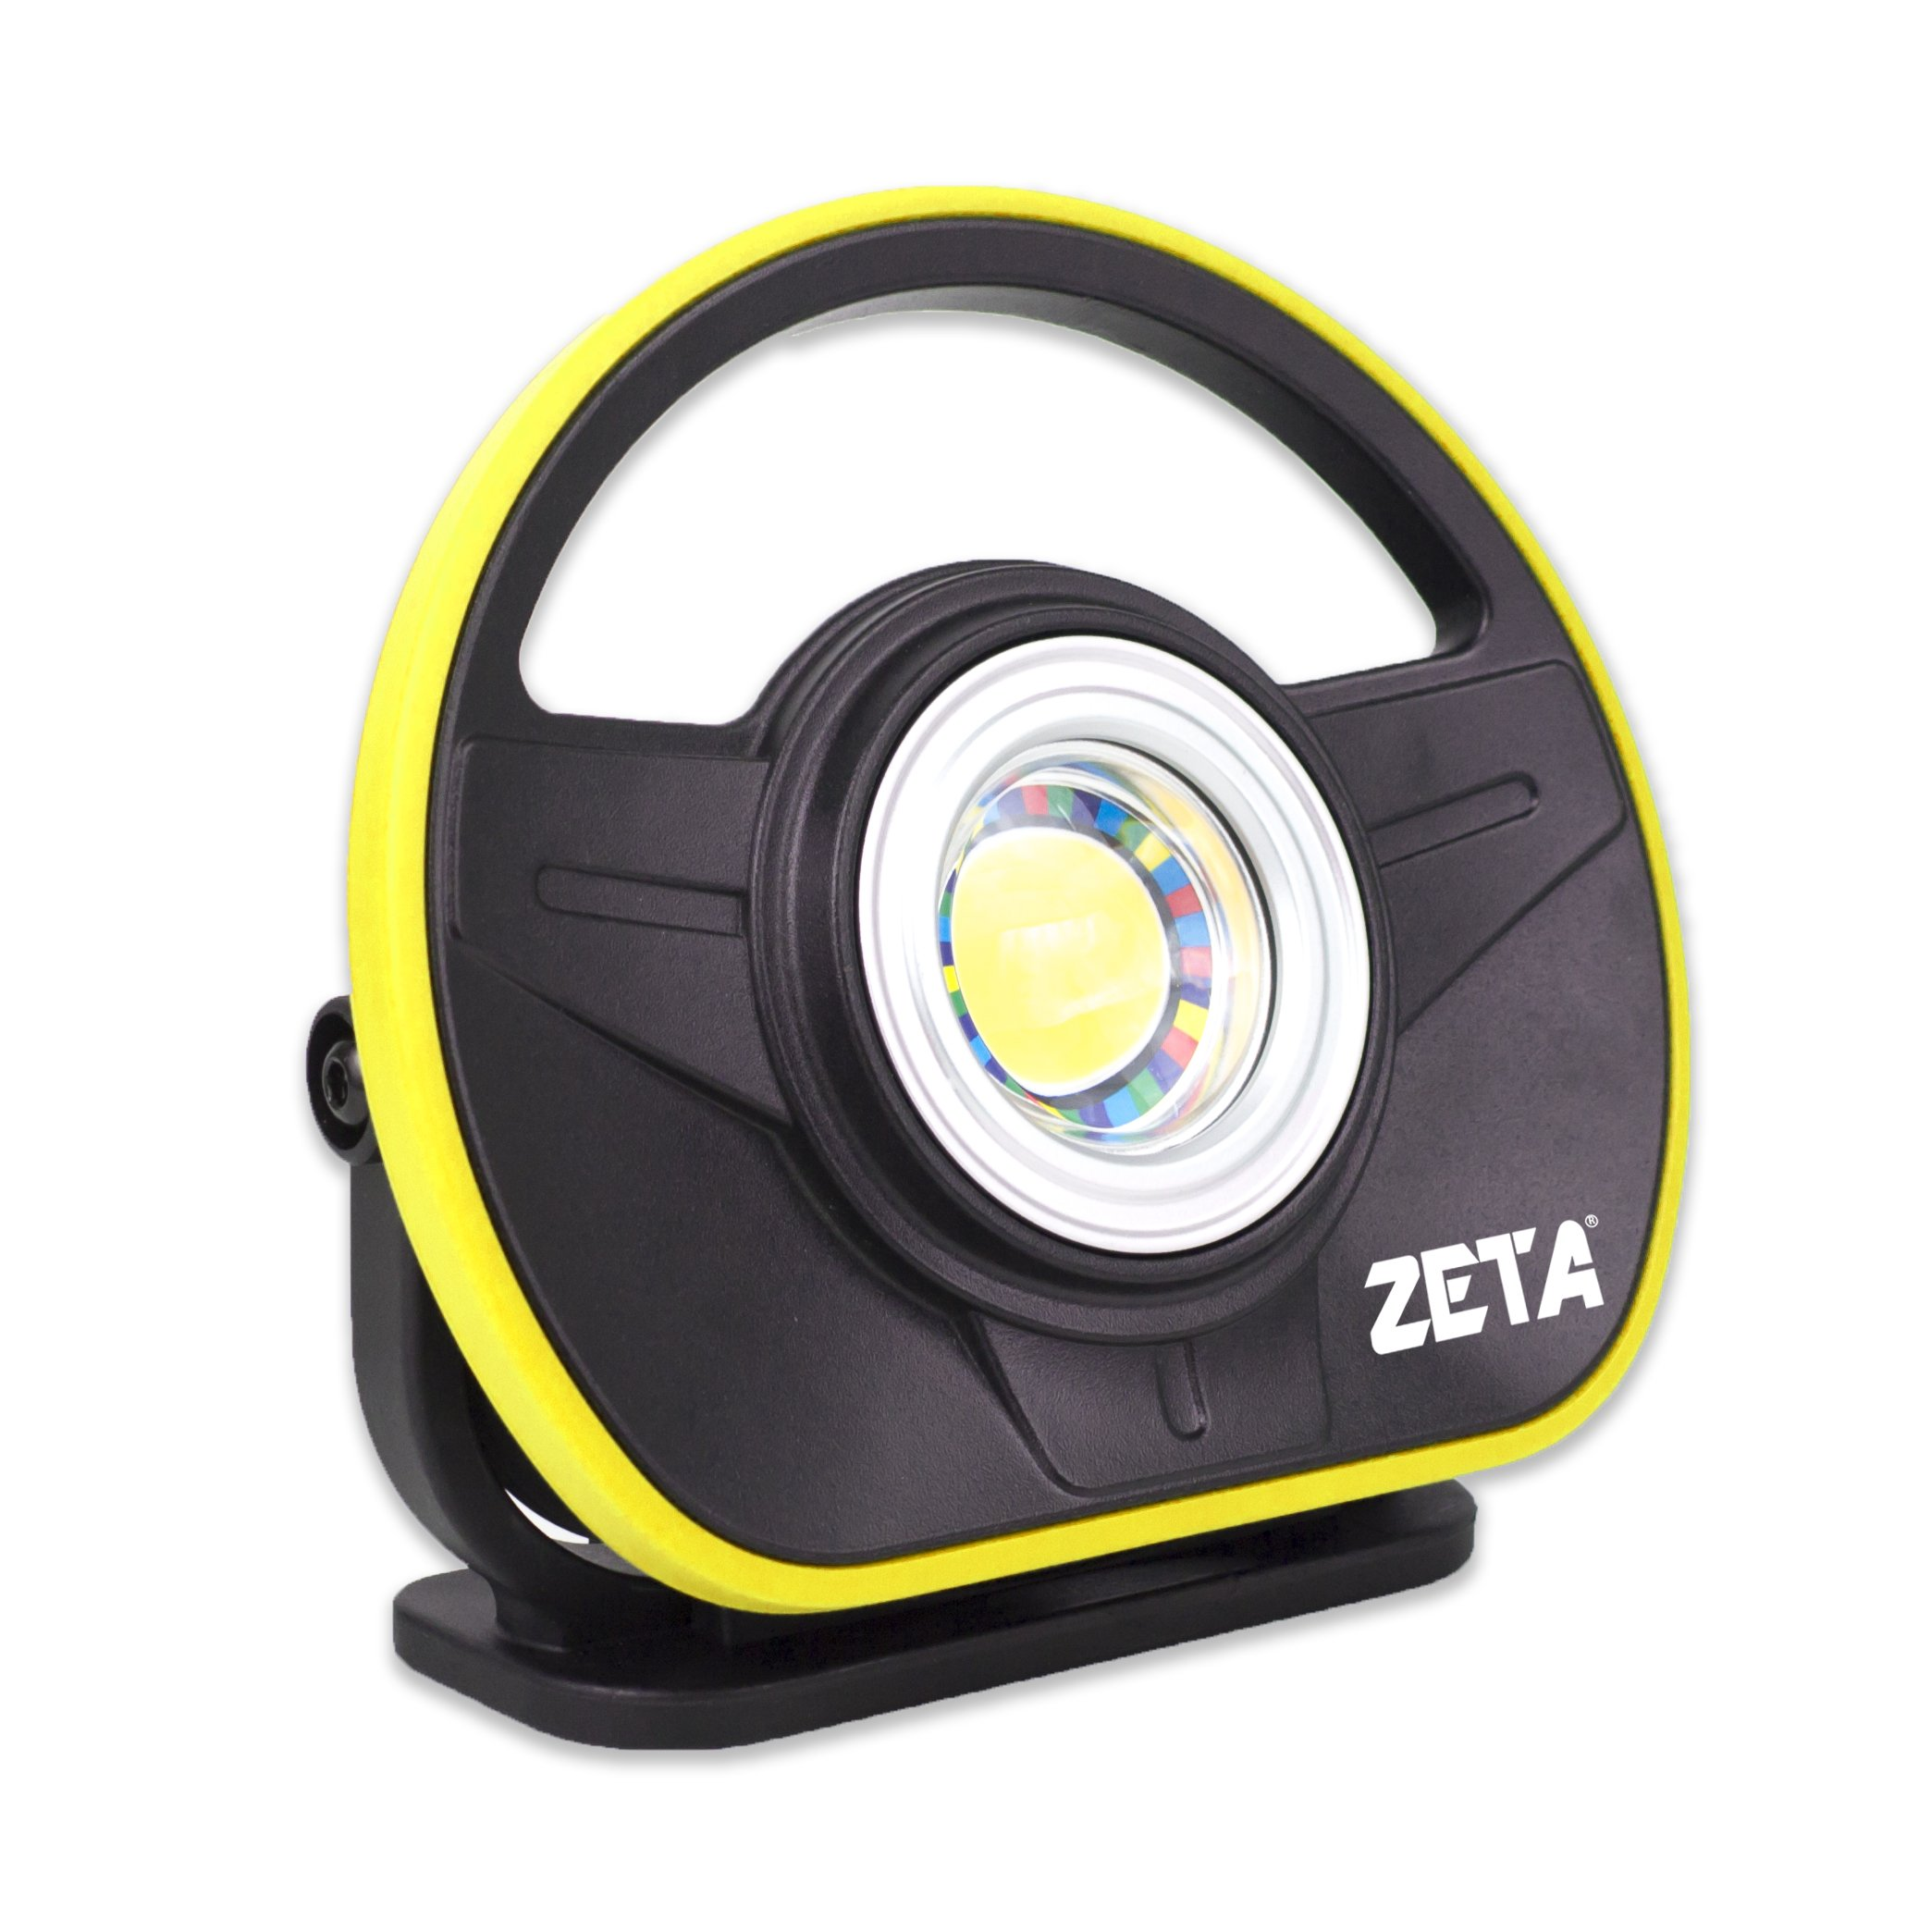 ZETA 900 Lumen Rechargeable Paint/Detailing Color Matching Light CRI 95